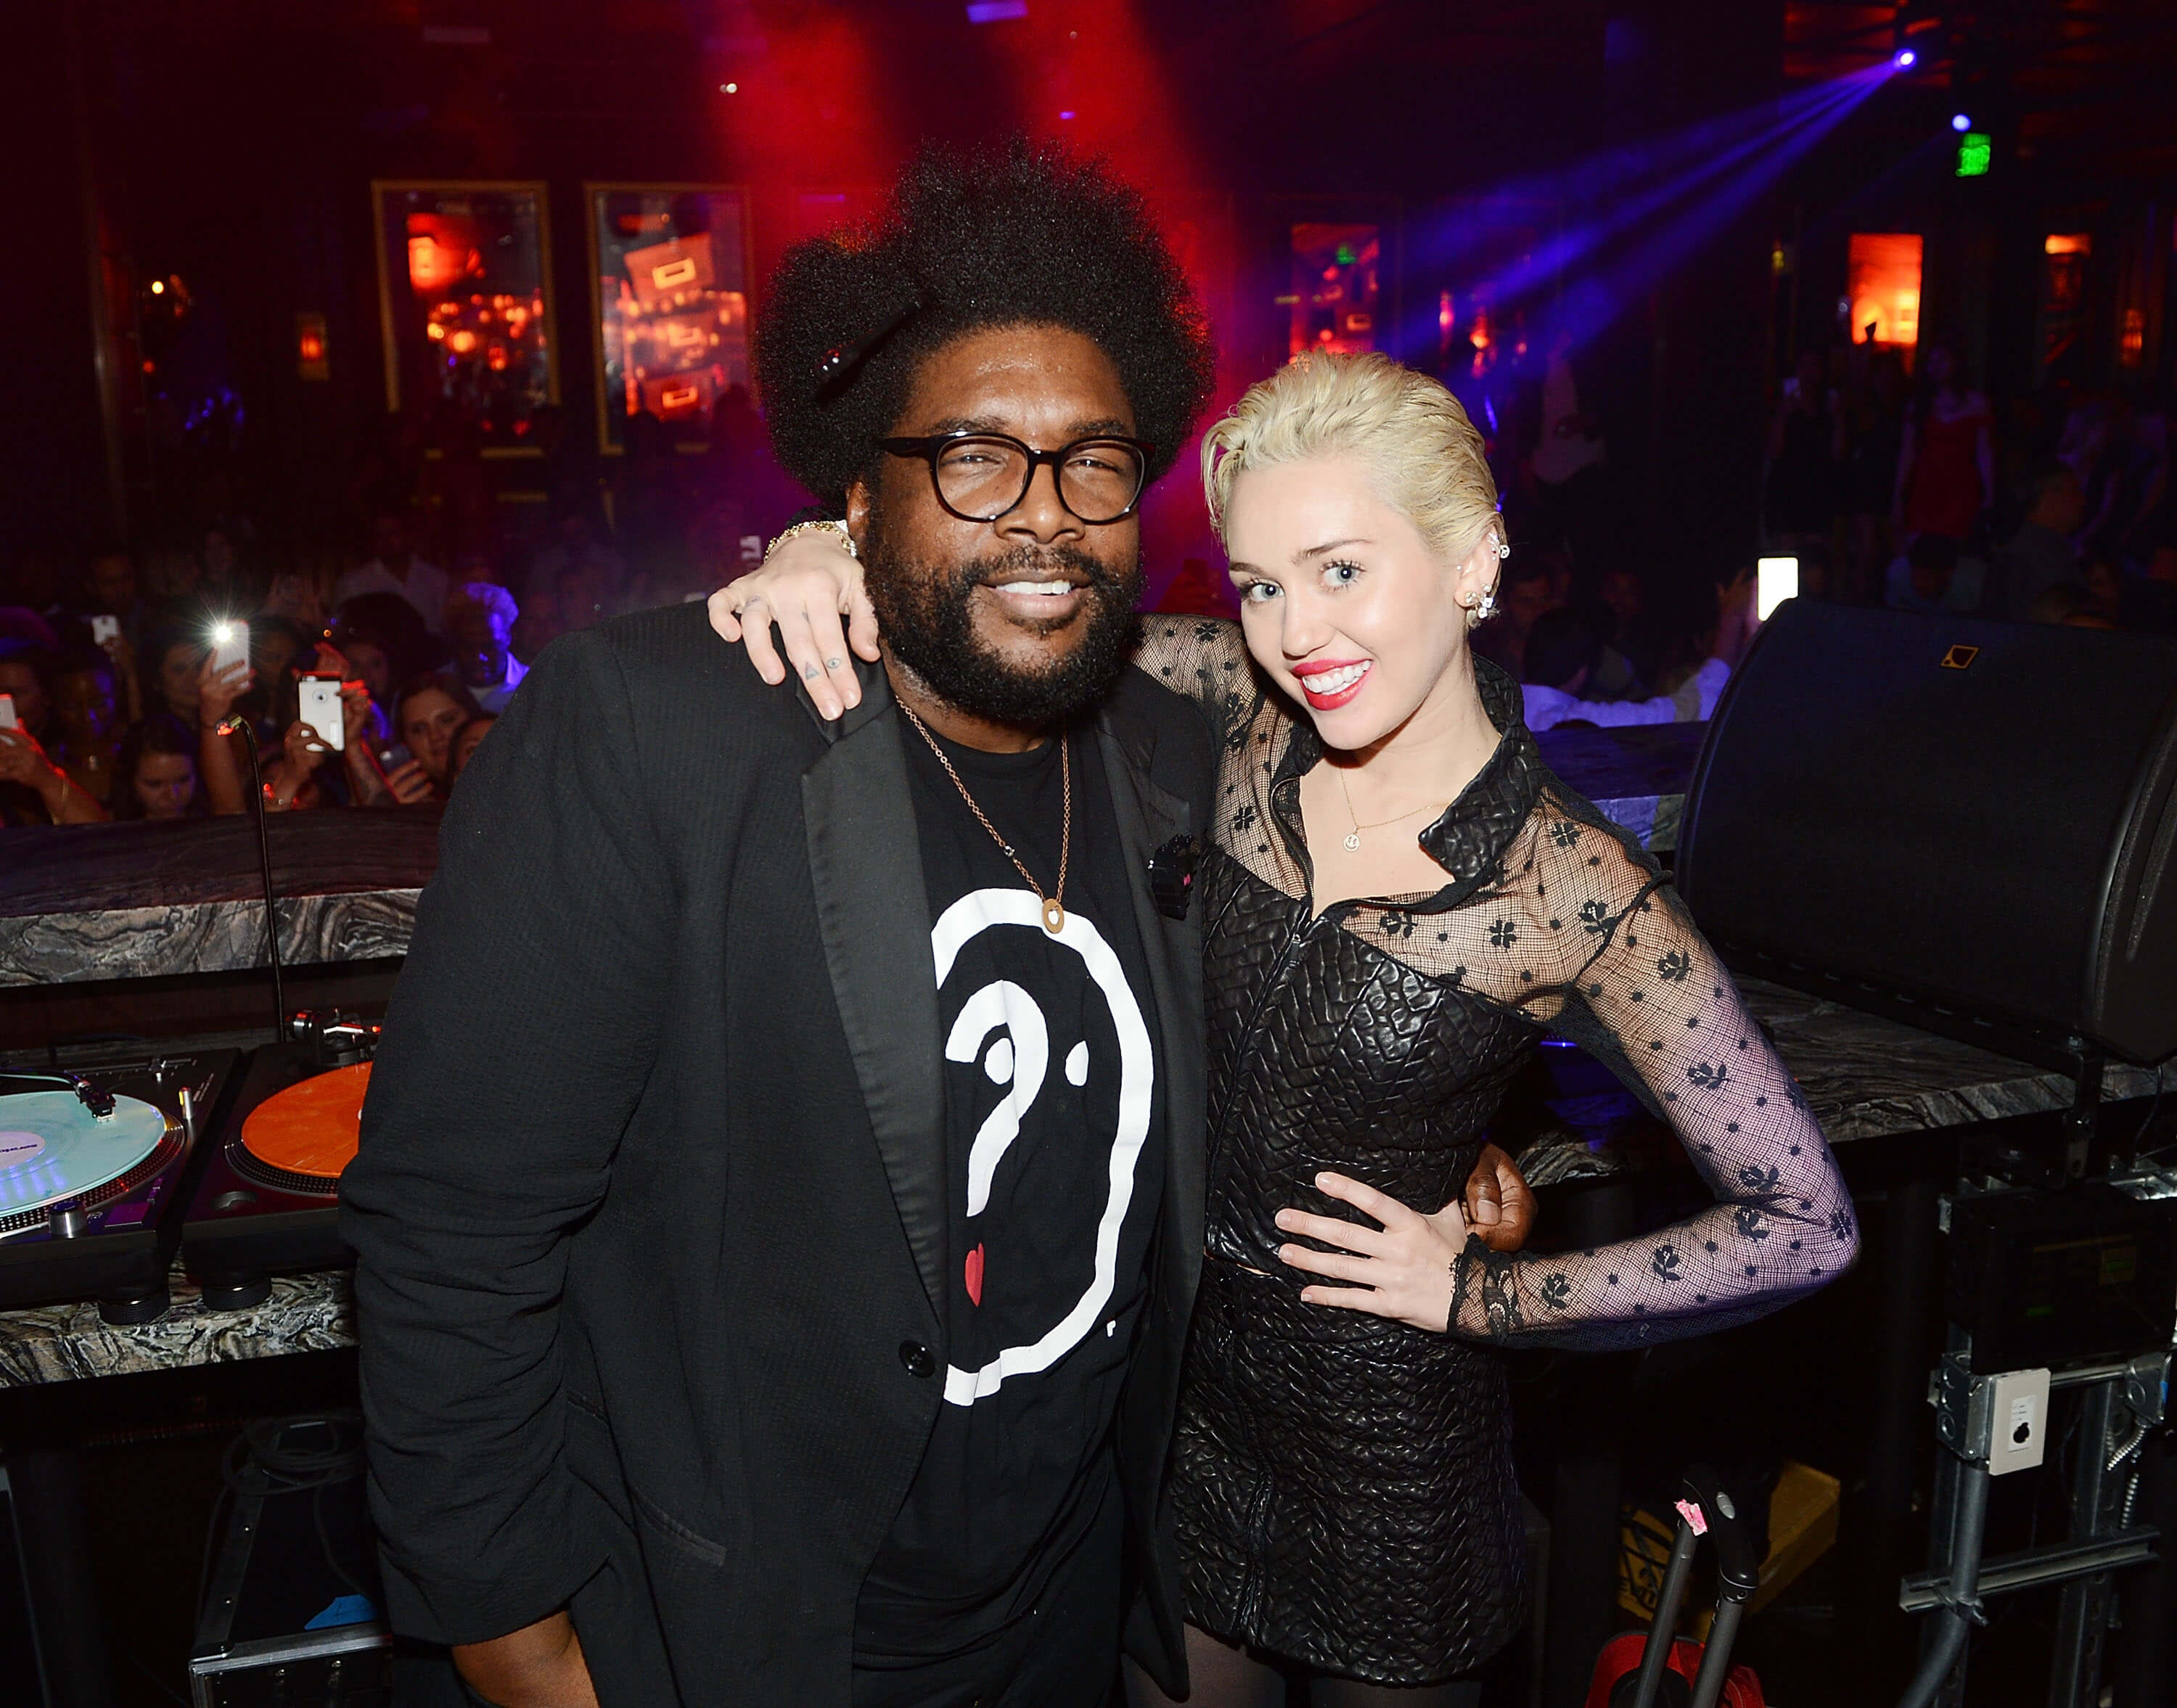 LAS VEGAS, NV - MARCH 21:  Questlove and Miley Cyrus attend Heart of OMNIA in Caesars Palace on March 21, 2015 in Las Vegas, Nevada.  (Photo by Denise Truscello/WireImage)